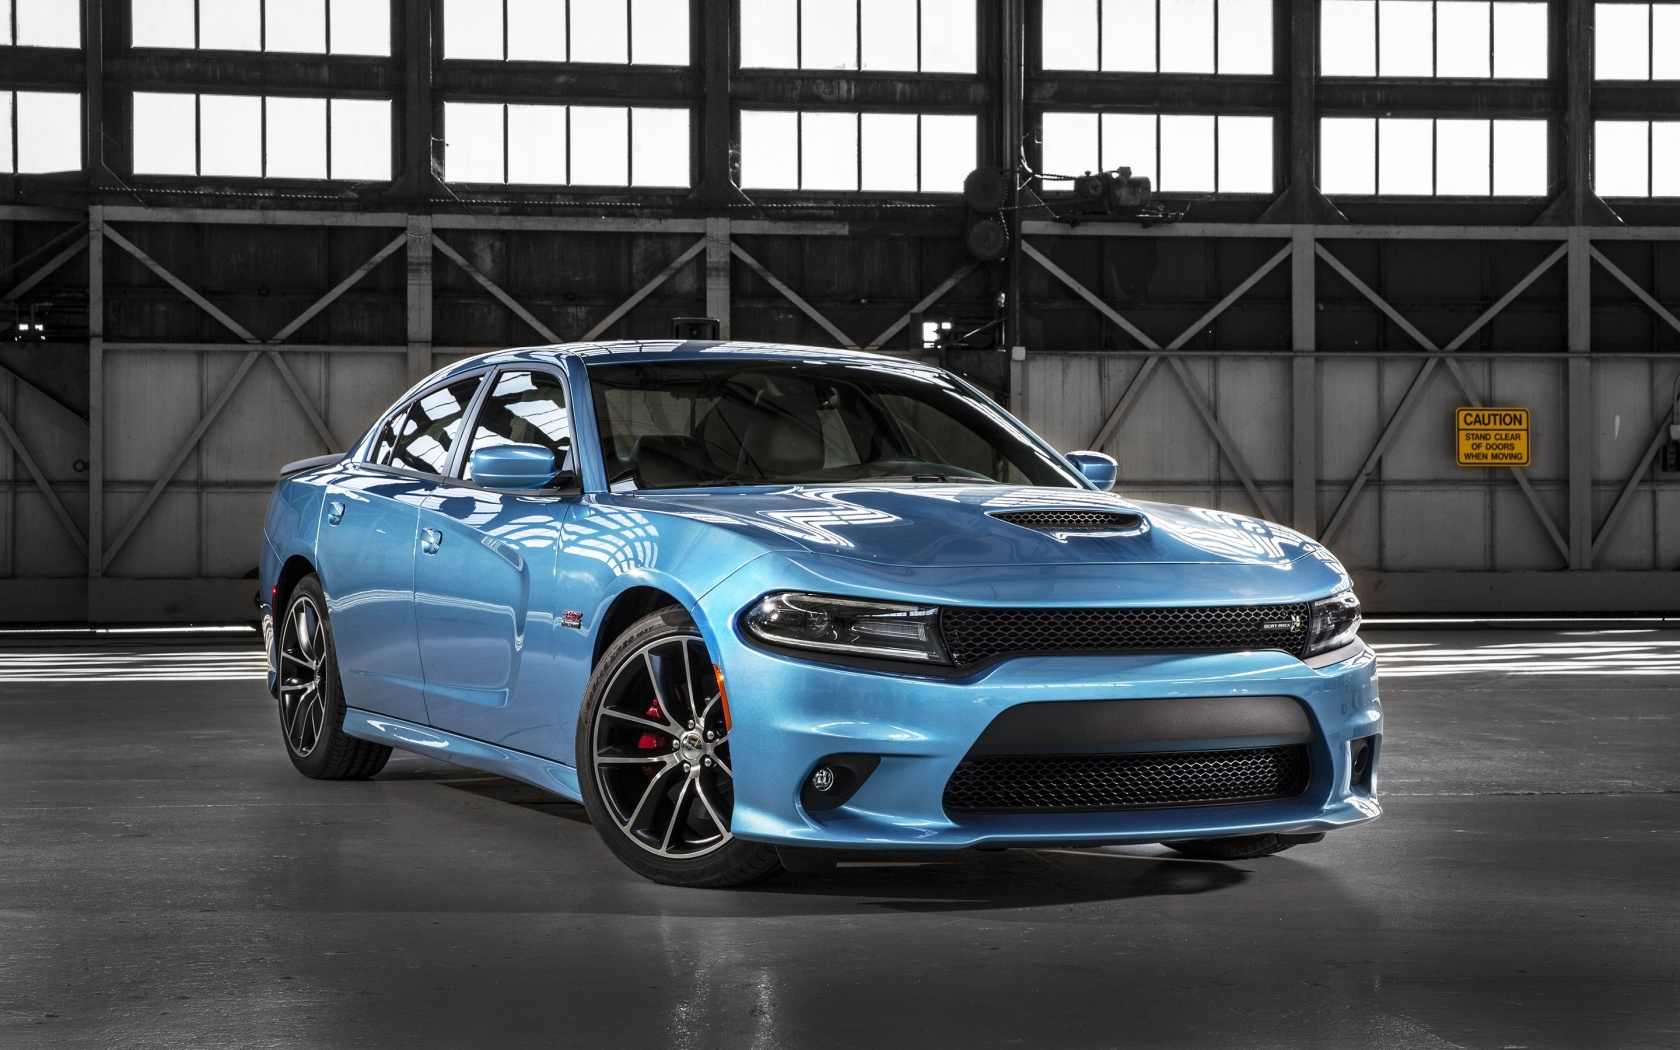 2015 Dodge Charger RT Scat Pack Wallpaper HD Car Wallpapers 1680x1050